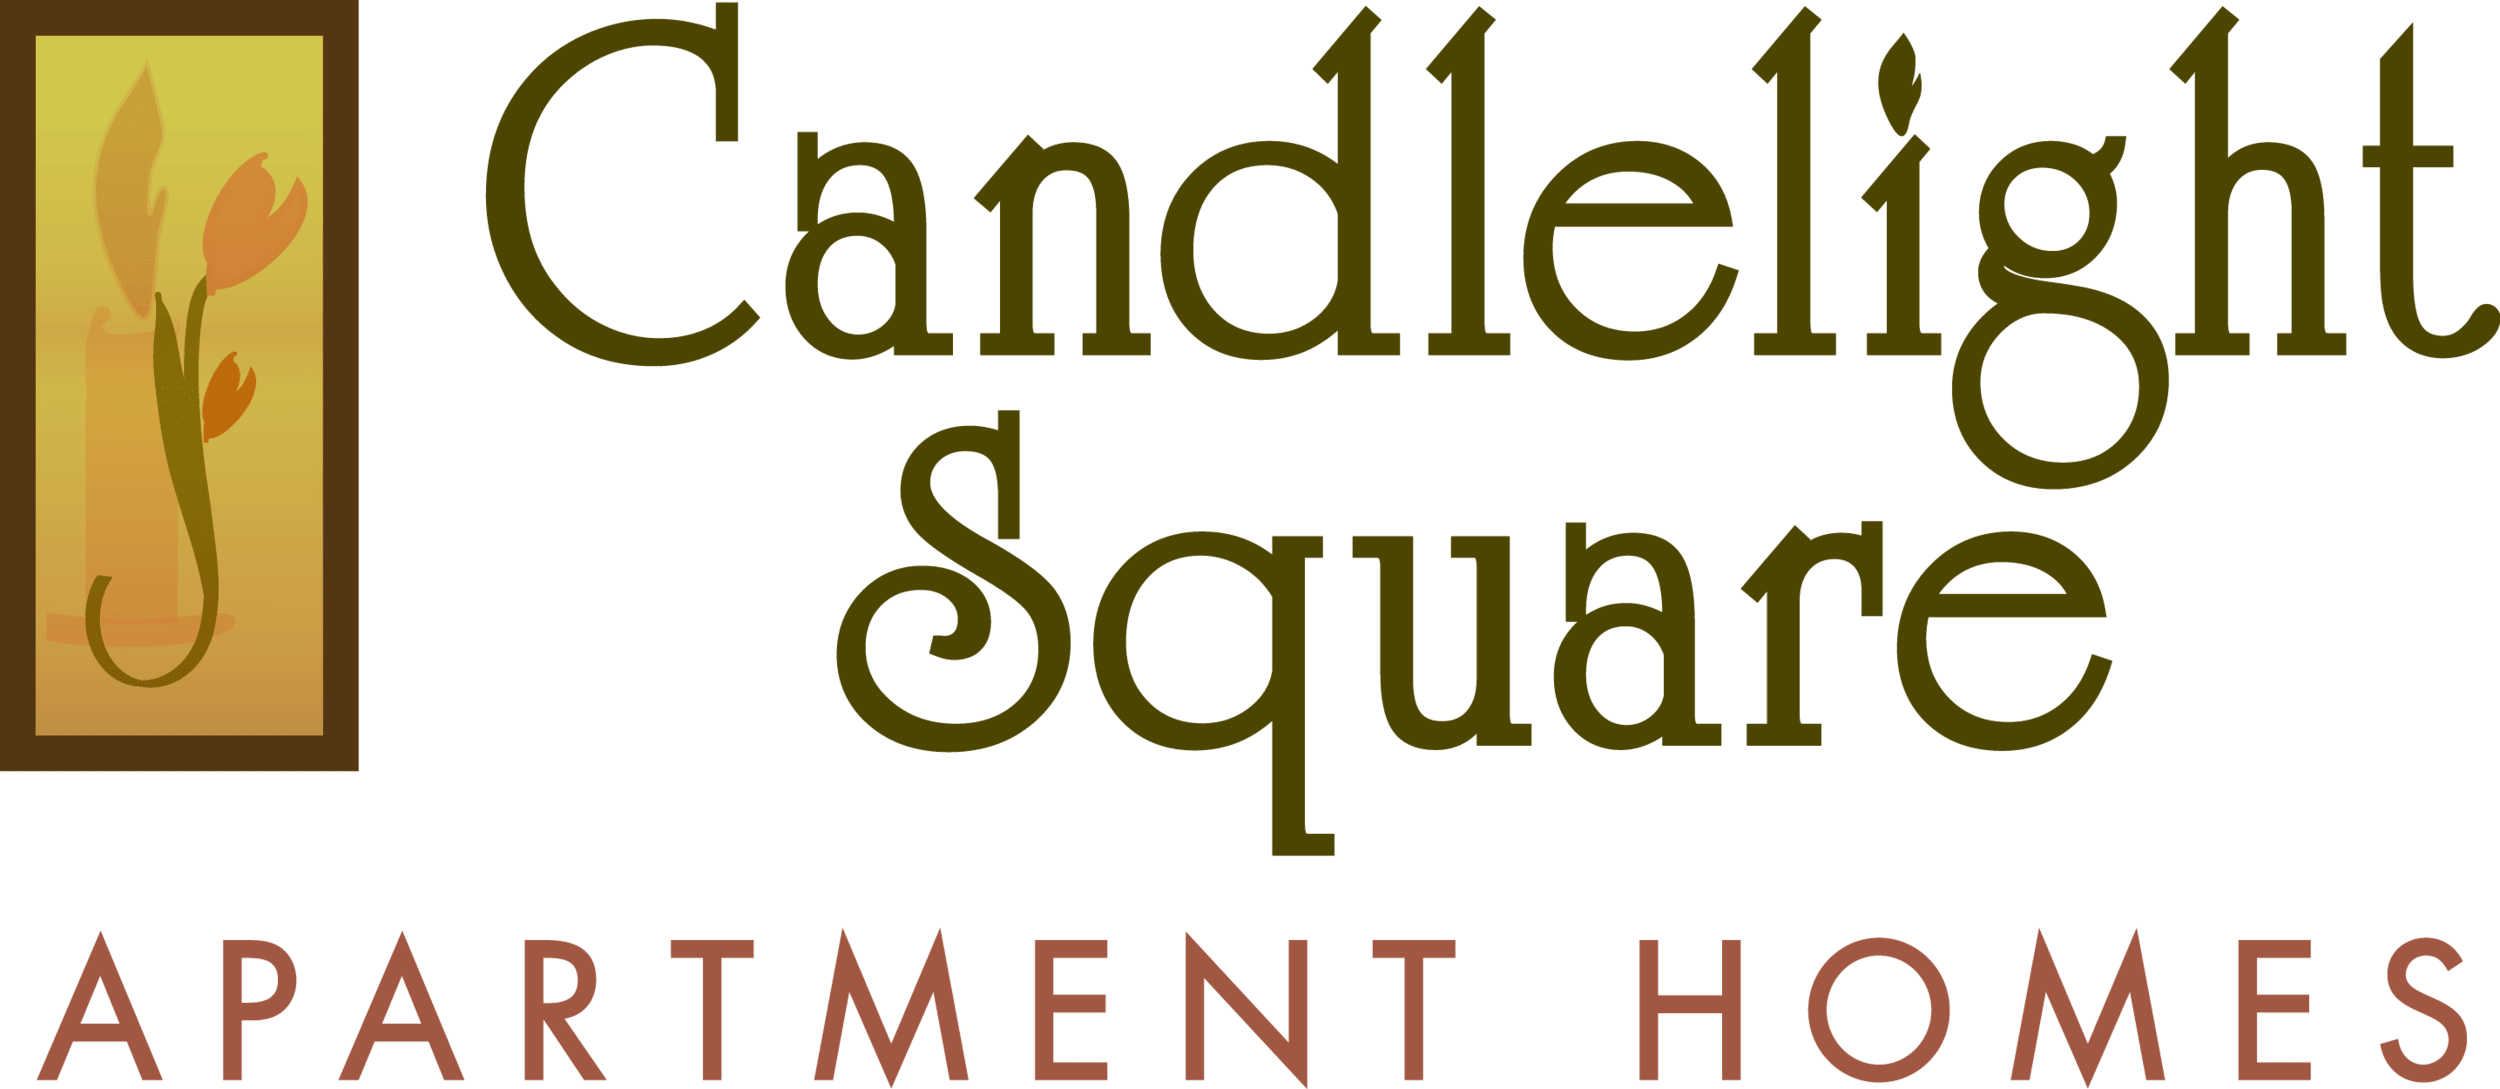 Candlelight Square